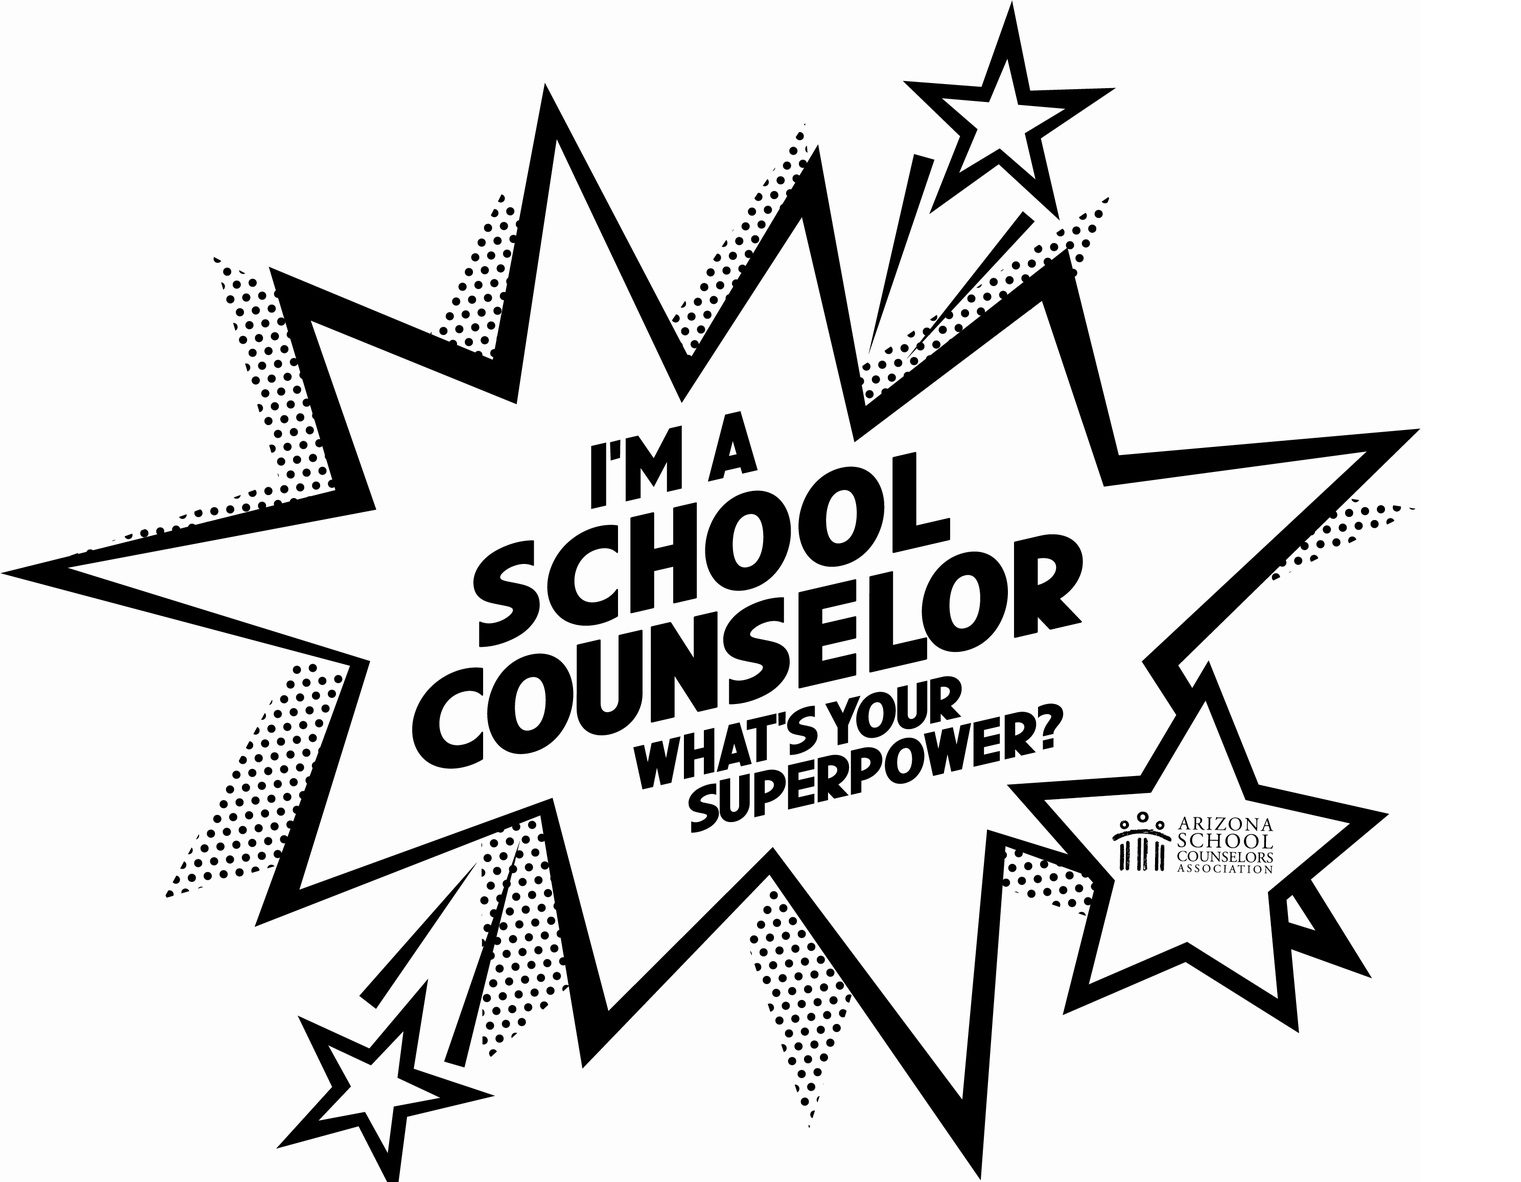 I M A School Counselor What S Your Superpower